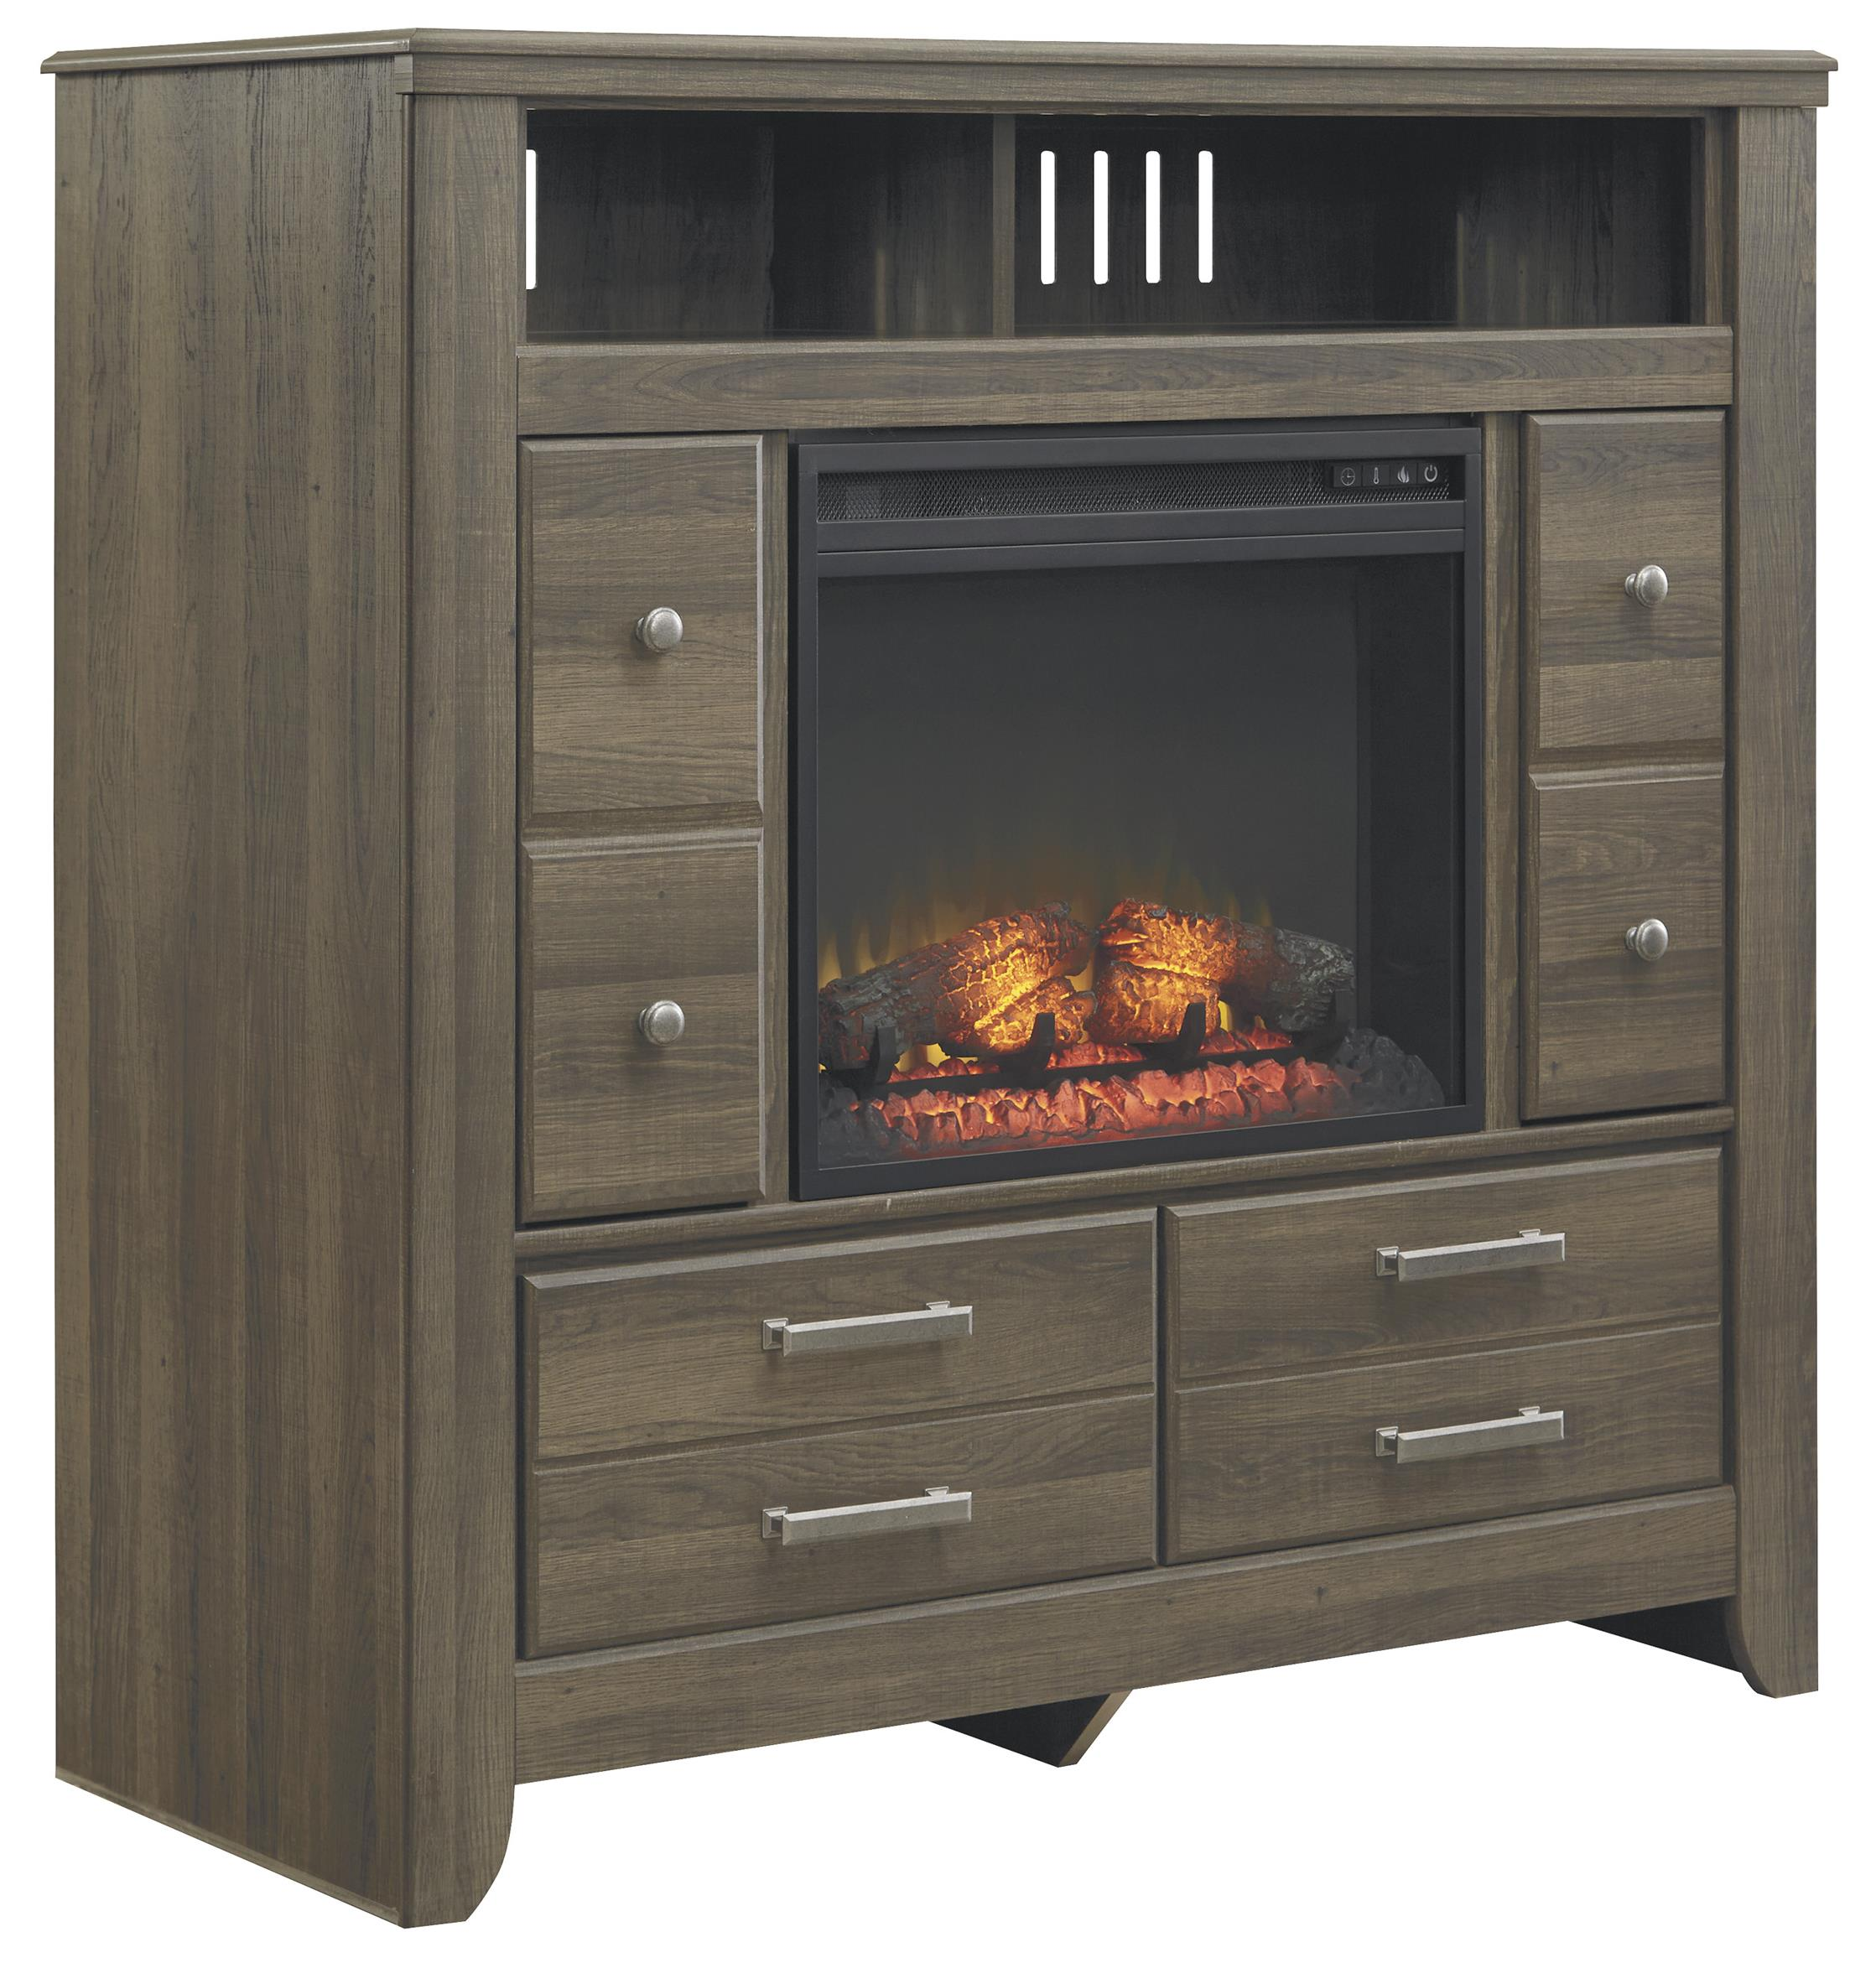 Signature Design by Ashley Juararo Media Chest with Electric Fireplace Insert - Item Number: B251-49+W100-01